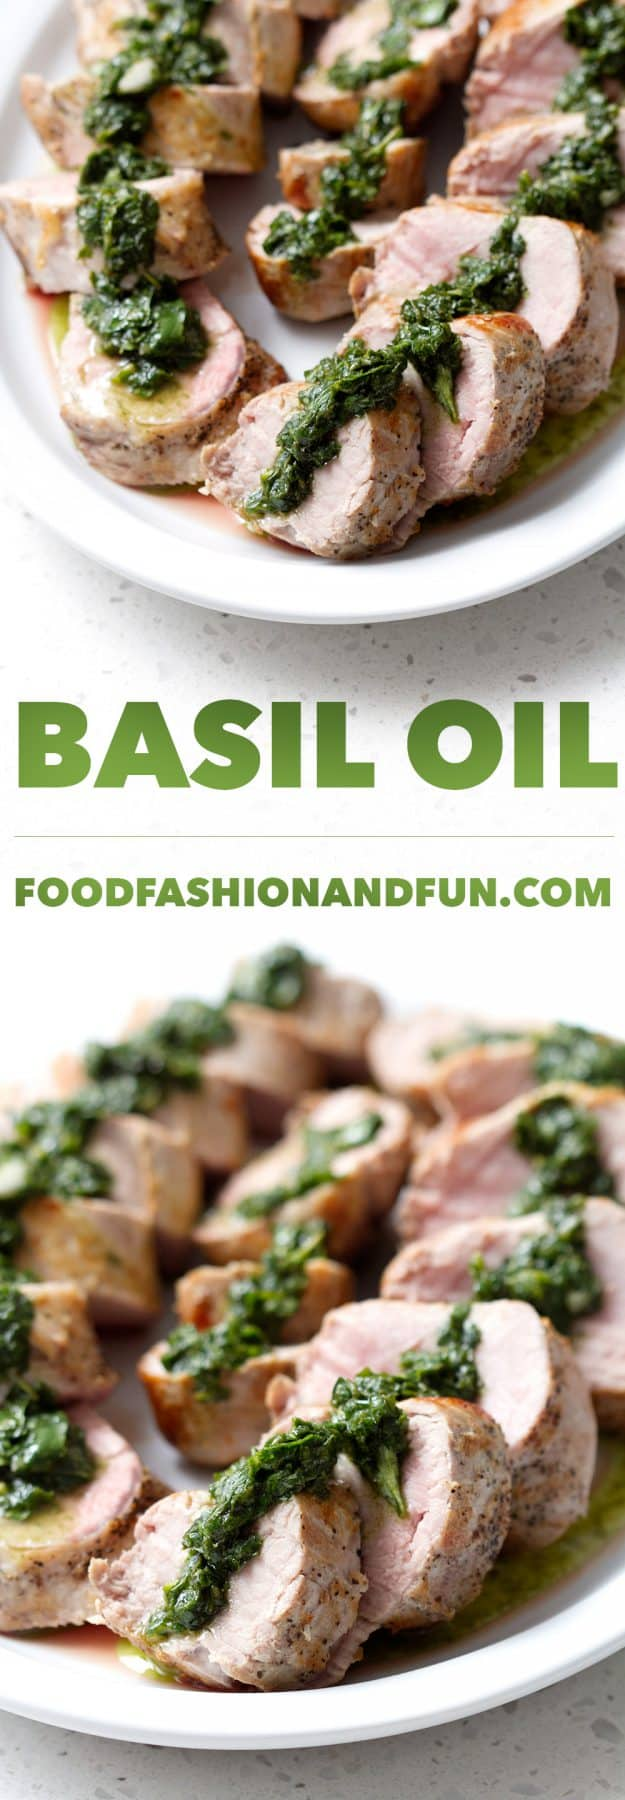 Basil Oil is a simple sauce of just four ingredients that is a perfect topping for simple grilled or roasted pork, shrimp, chicken or beef. This recipe is allergy friendly (gluten, dairy, shellfish, nut, egg, and soy free) and suits the autoimmune protocol and paleo diet.